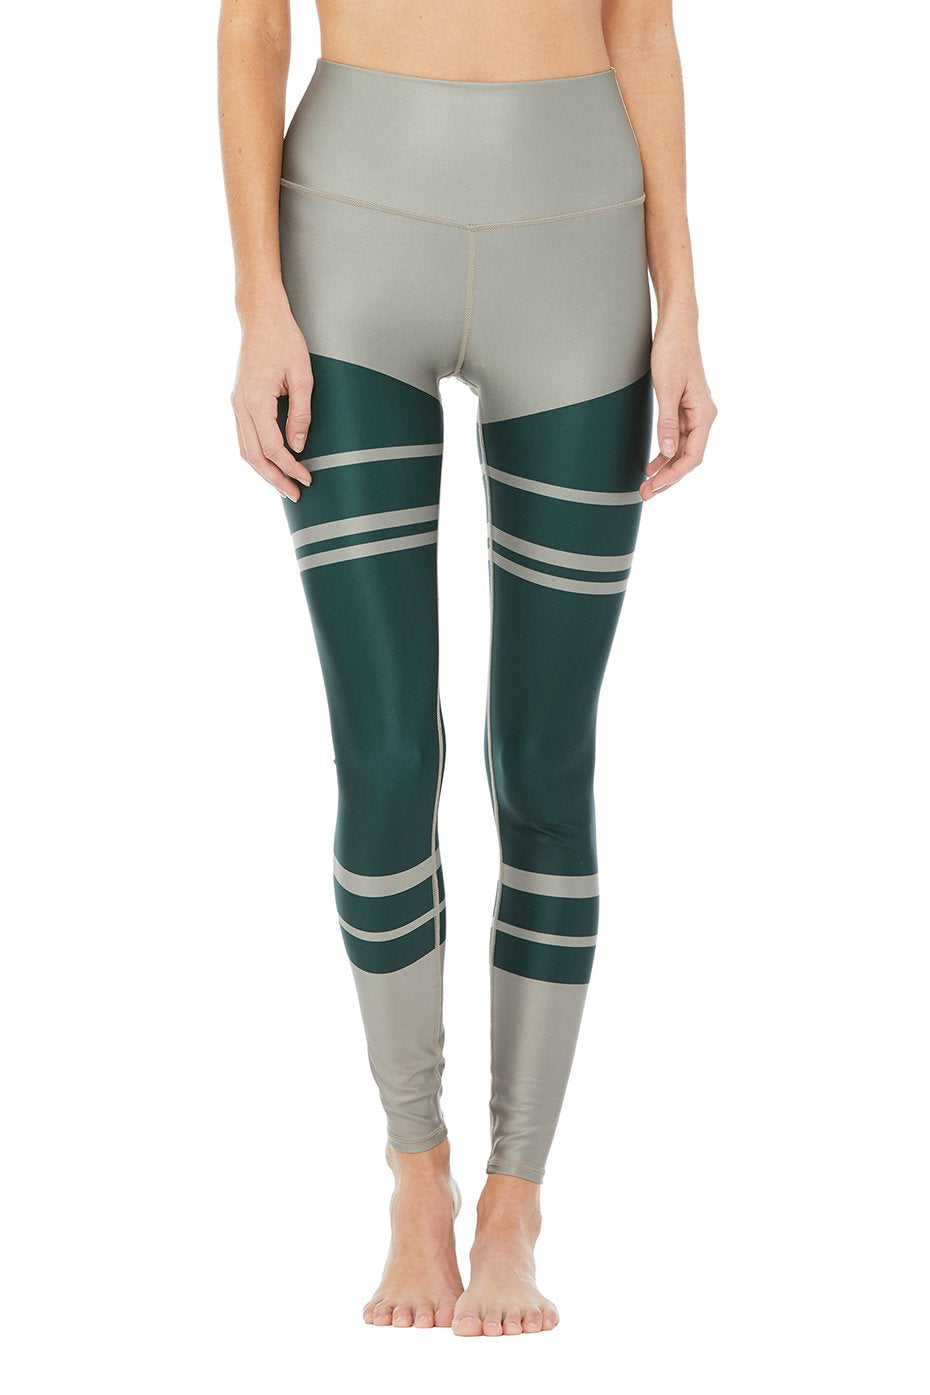 Alo High Waisted Airift Legging - Marathon Print